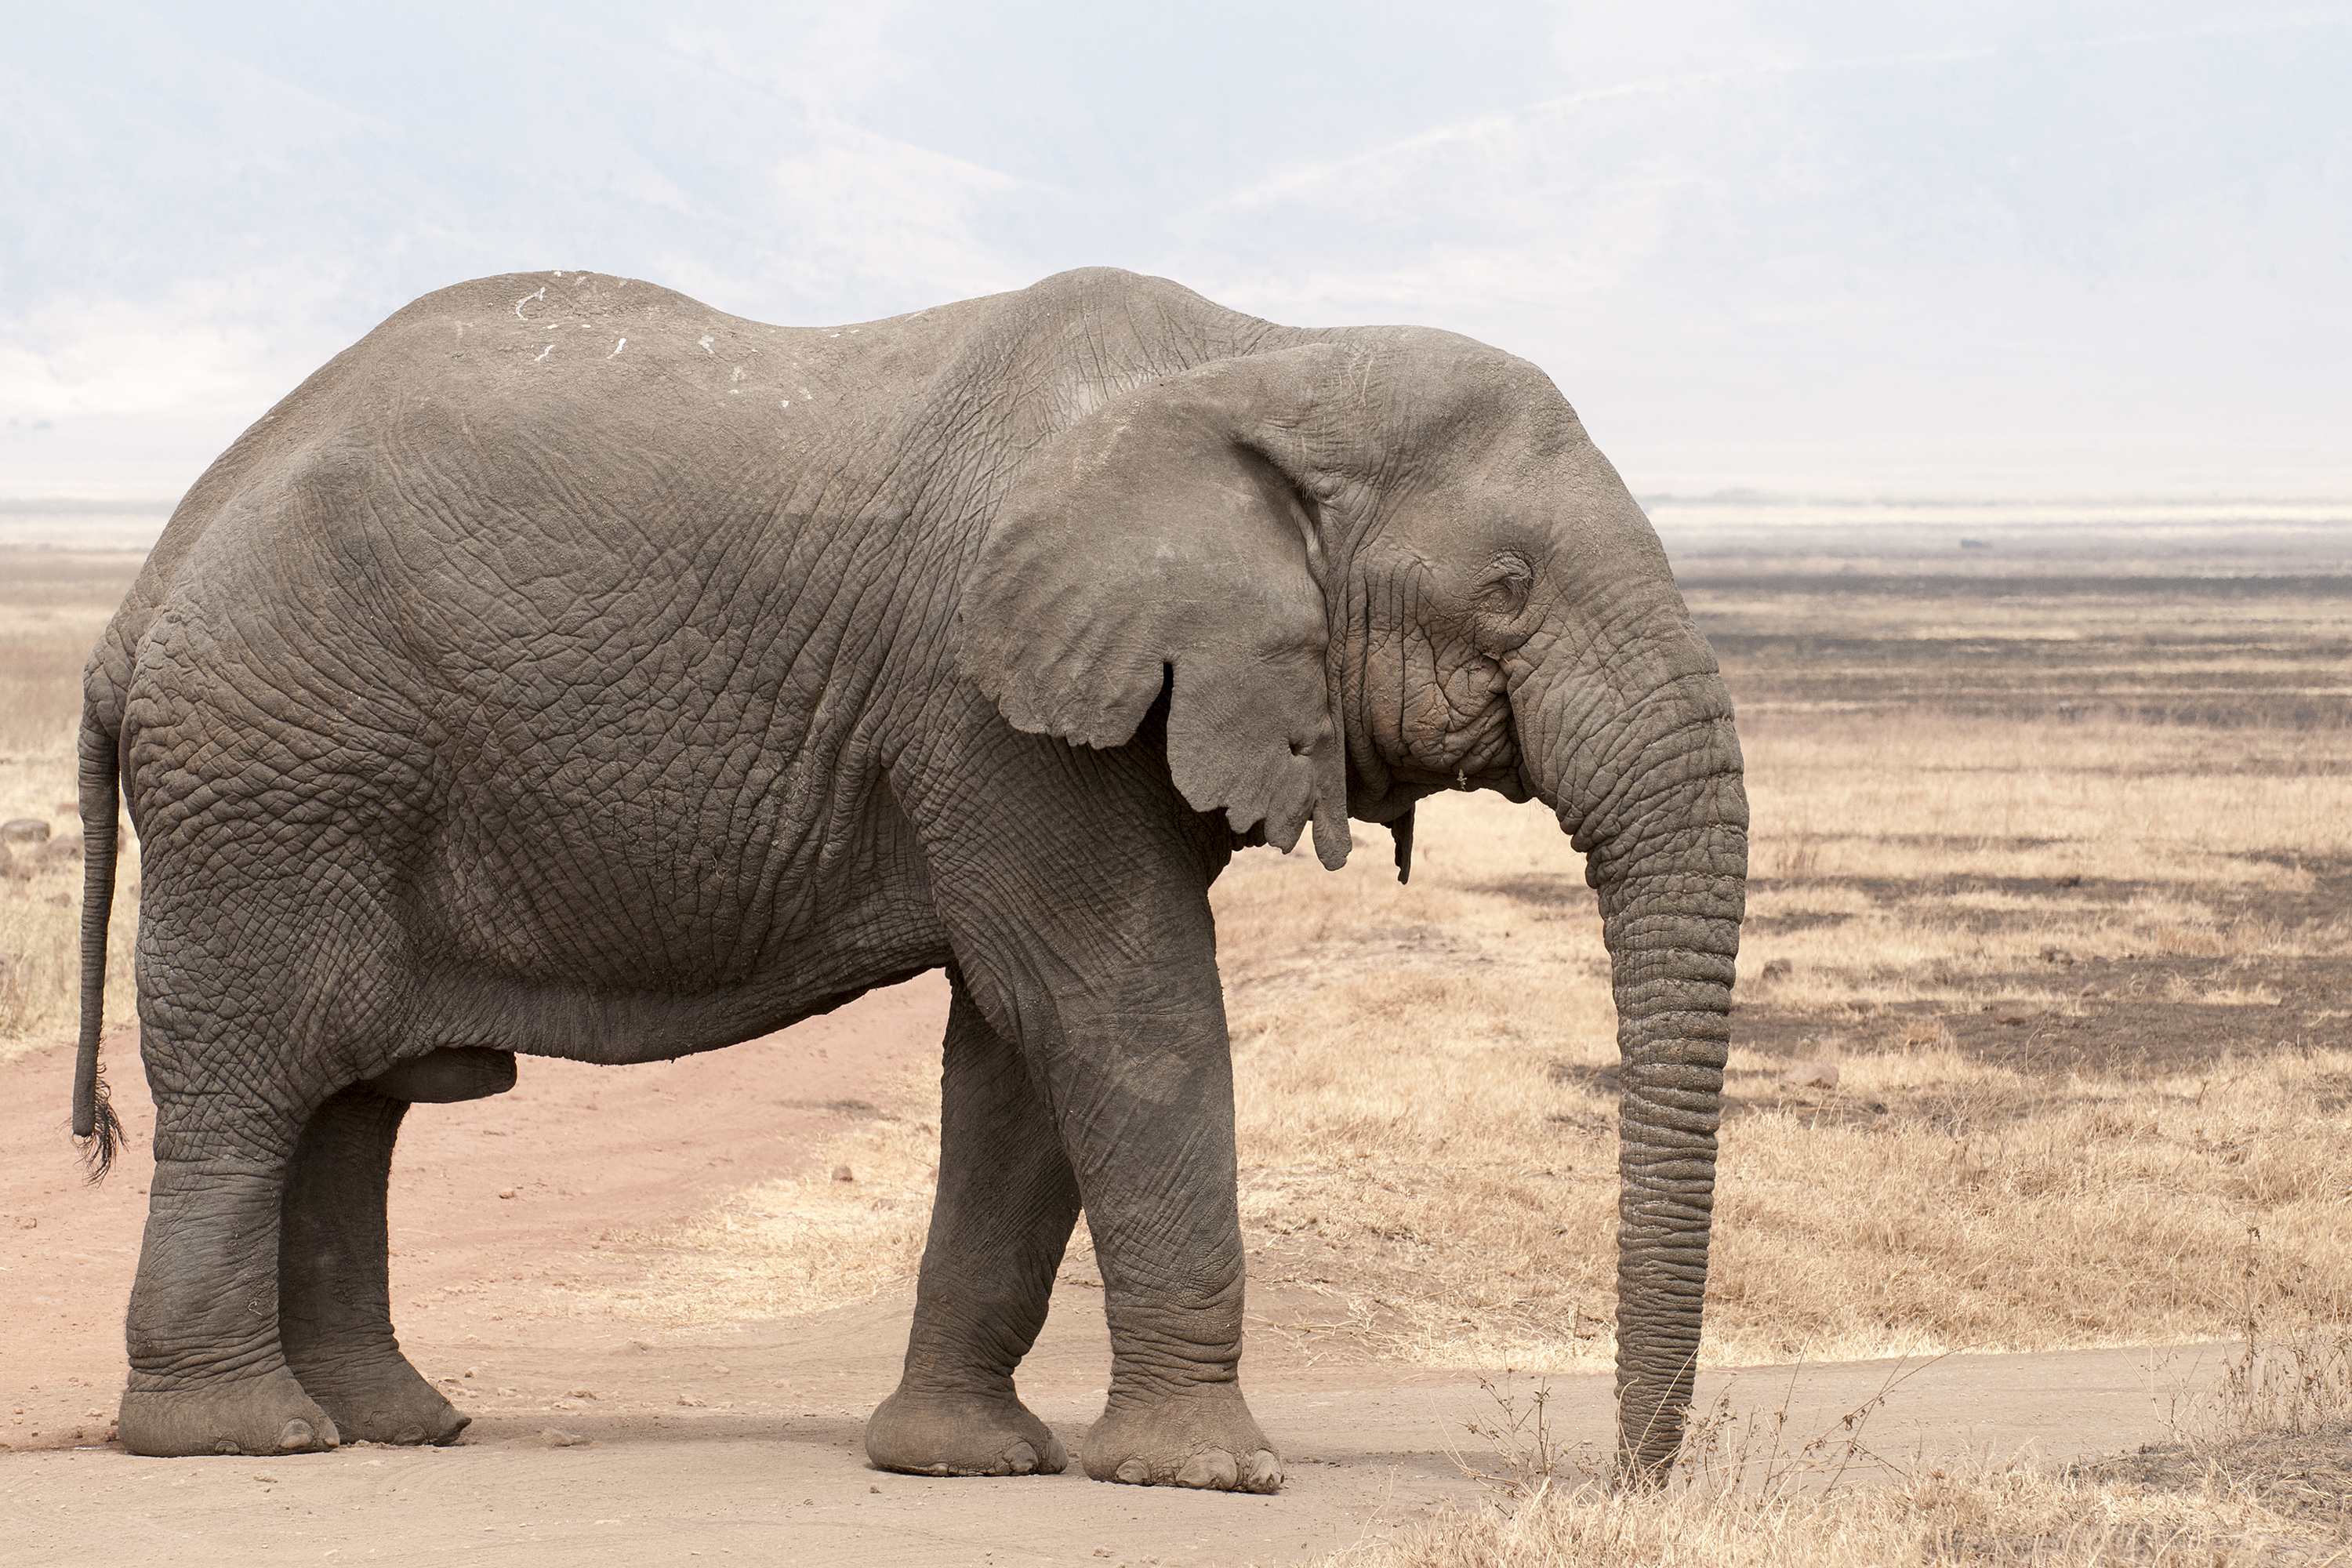 African Elephants Are Becoming Tuskless to Evade Poachers | Inverse